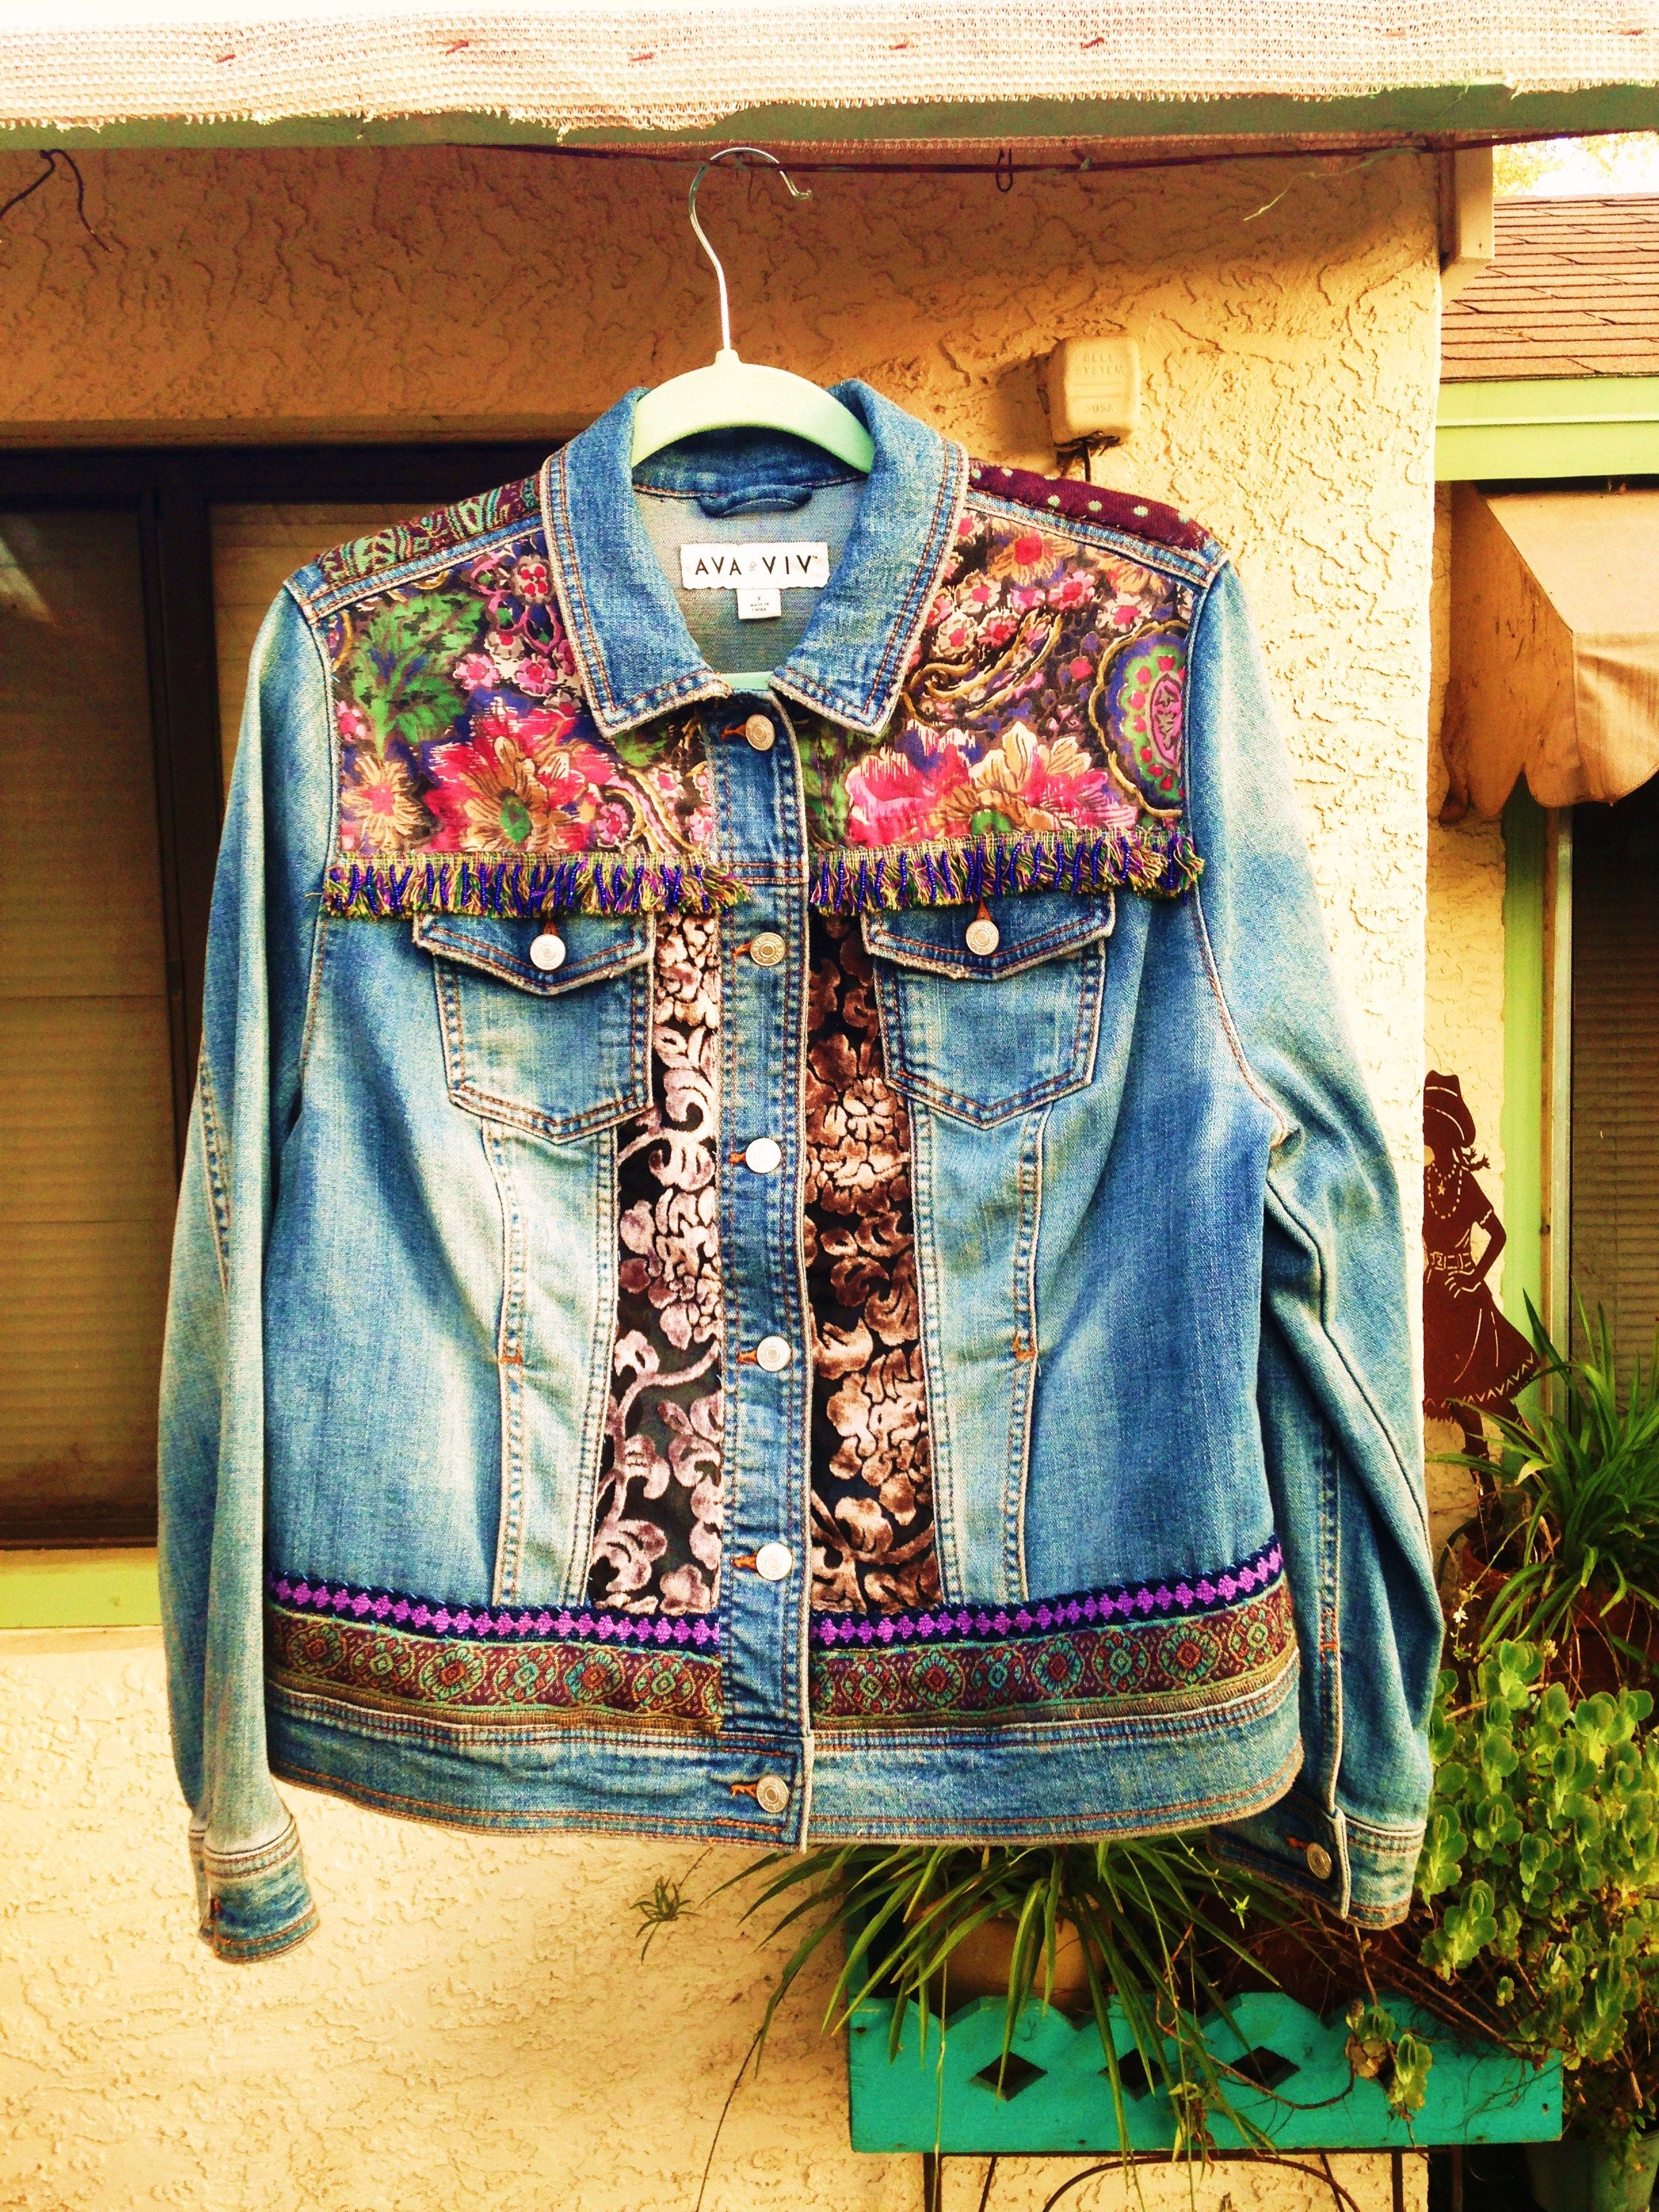 Custom Painted Up Cycled Denim Boho Hippie Peace Caravan Jacket With Thrifted Fabrics Front By Bleudoor On Instagram Denim Jacket Upcycle Clothes Jackets [ 3264 x 2448 Pixel ]